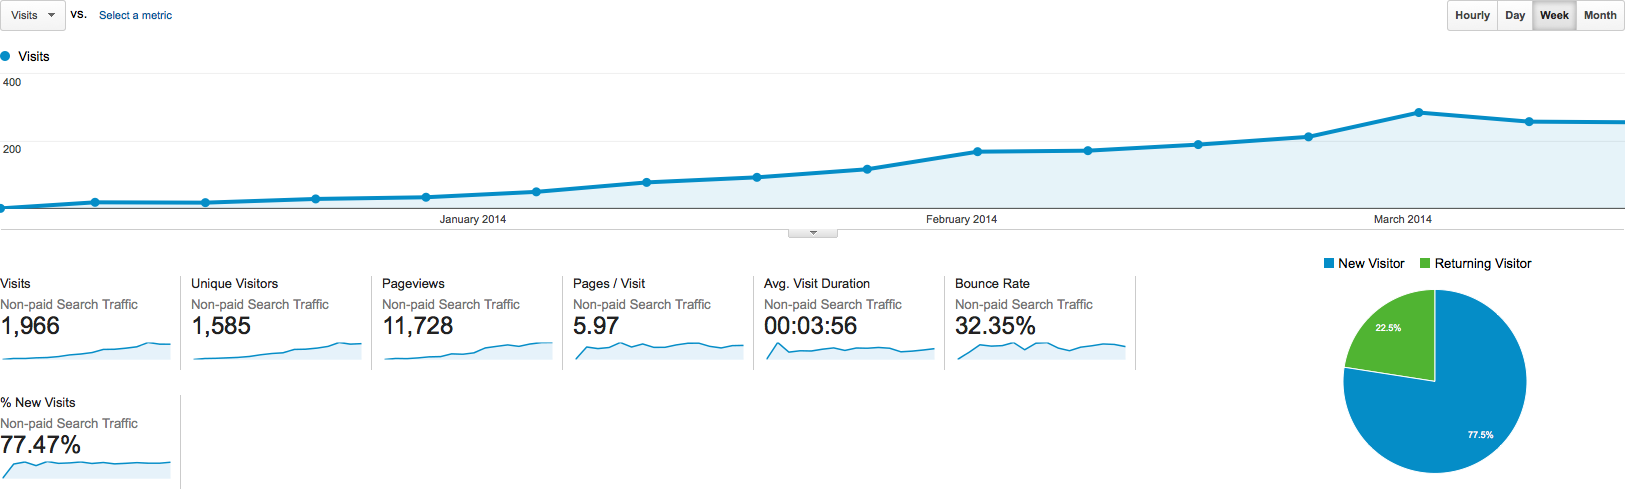 Wall Vision Analytics data showing the rise in Non-paid Search Traffic (Organic) from December 2013 until late-March 2014.